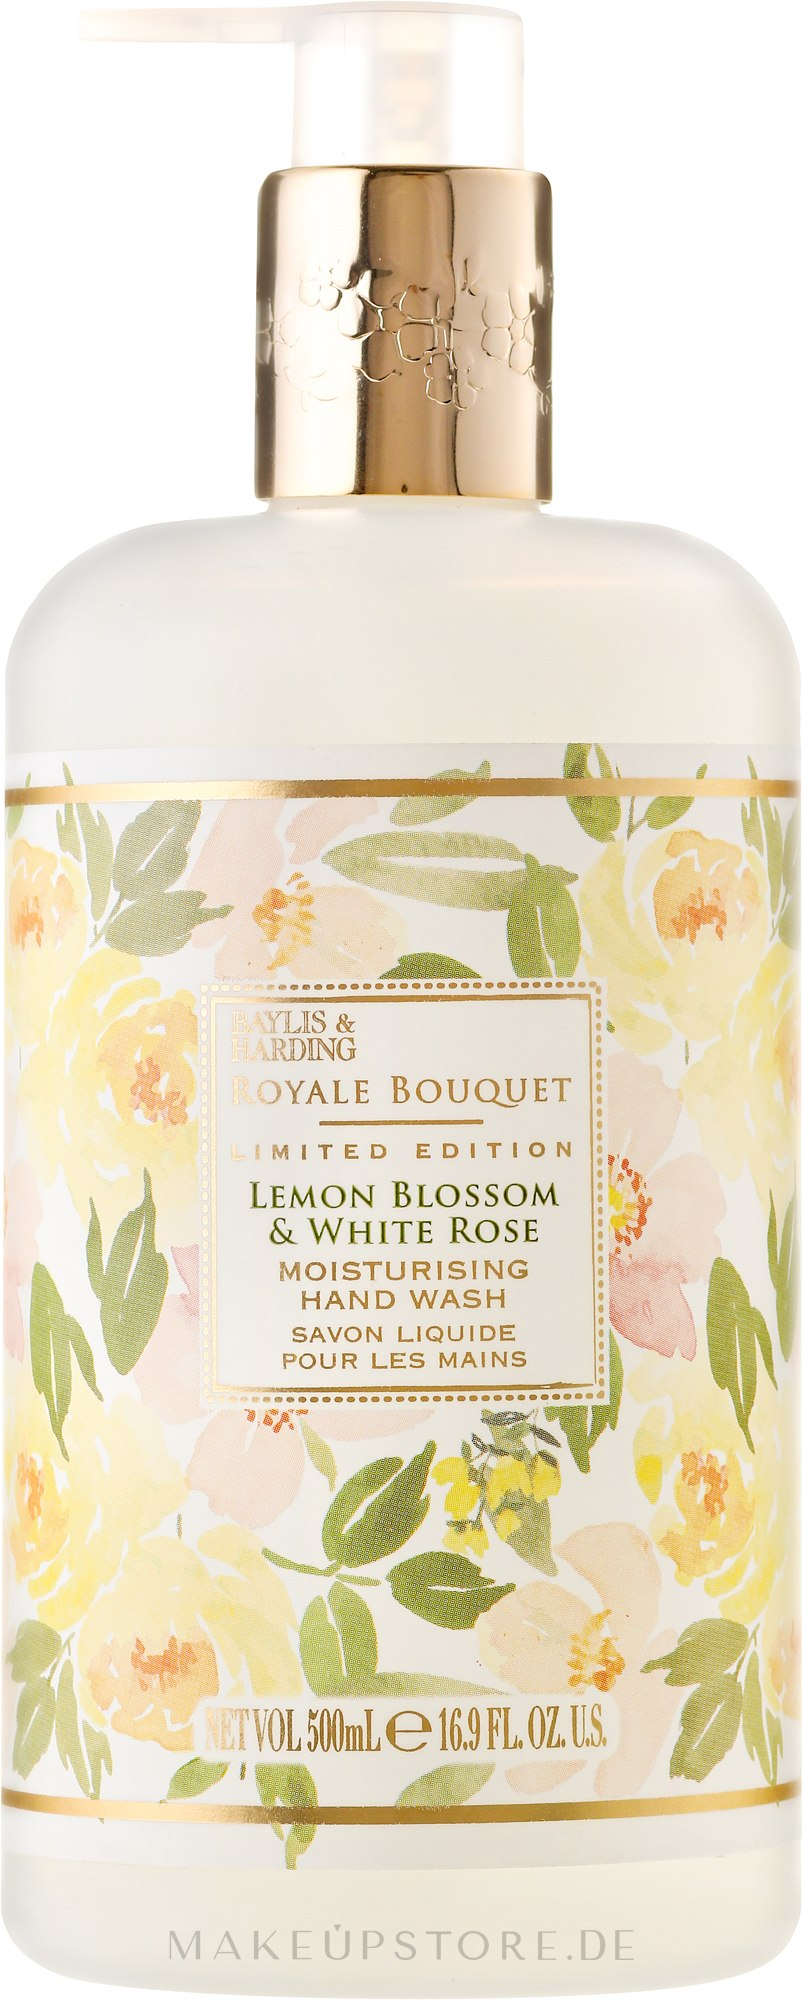 "Flüssige Handseife ""Schöllkraut"" - Baylis & Harding Royal Bouquet Lemon Blossom & White Rose Hand Wash — Bild 500 ml"